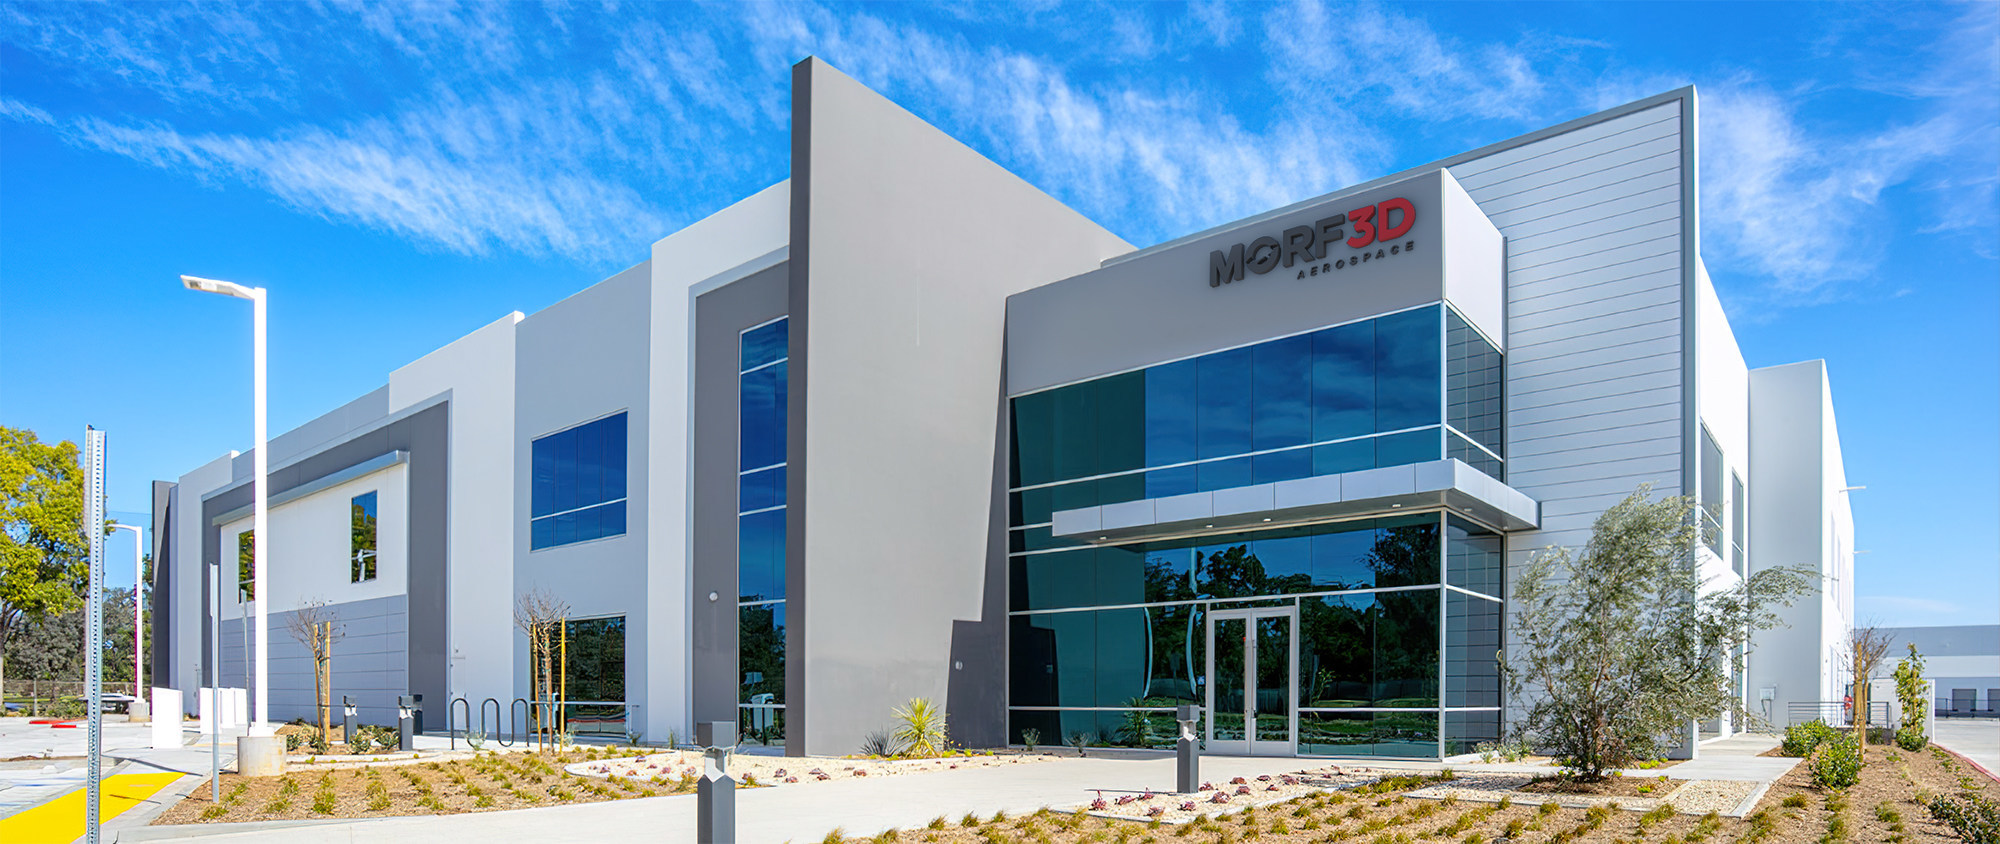 Morf3D Launches New 3D Printing Facility in California